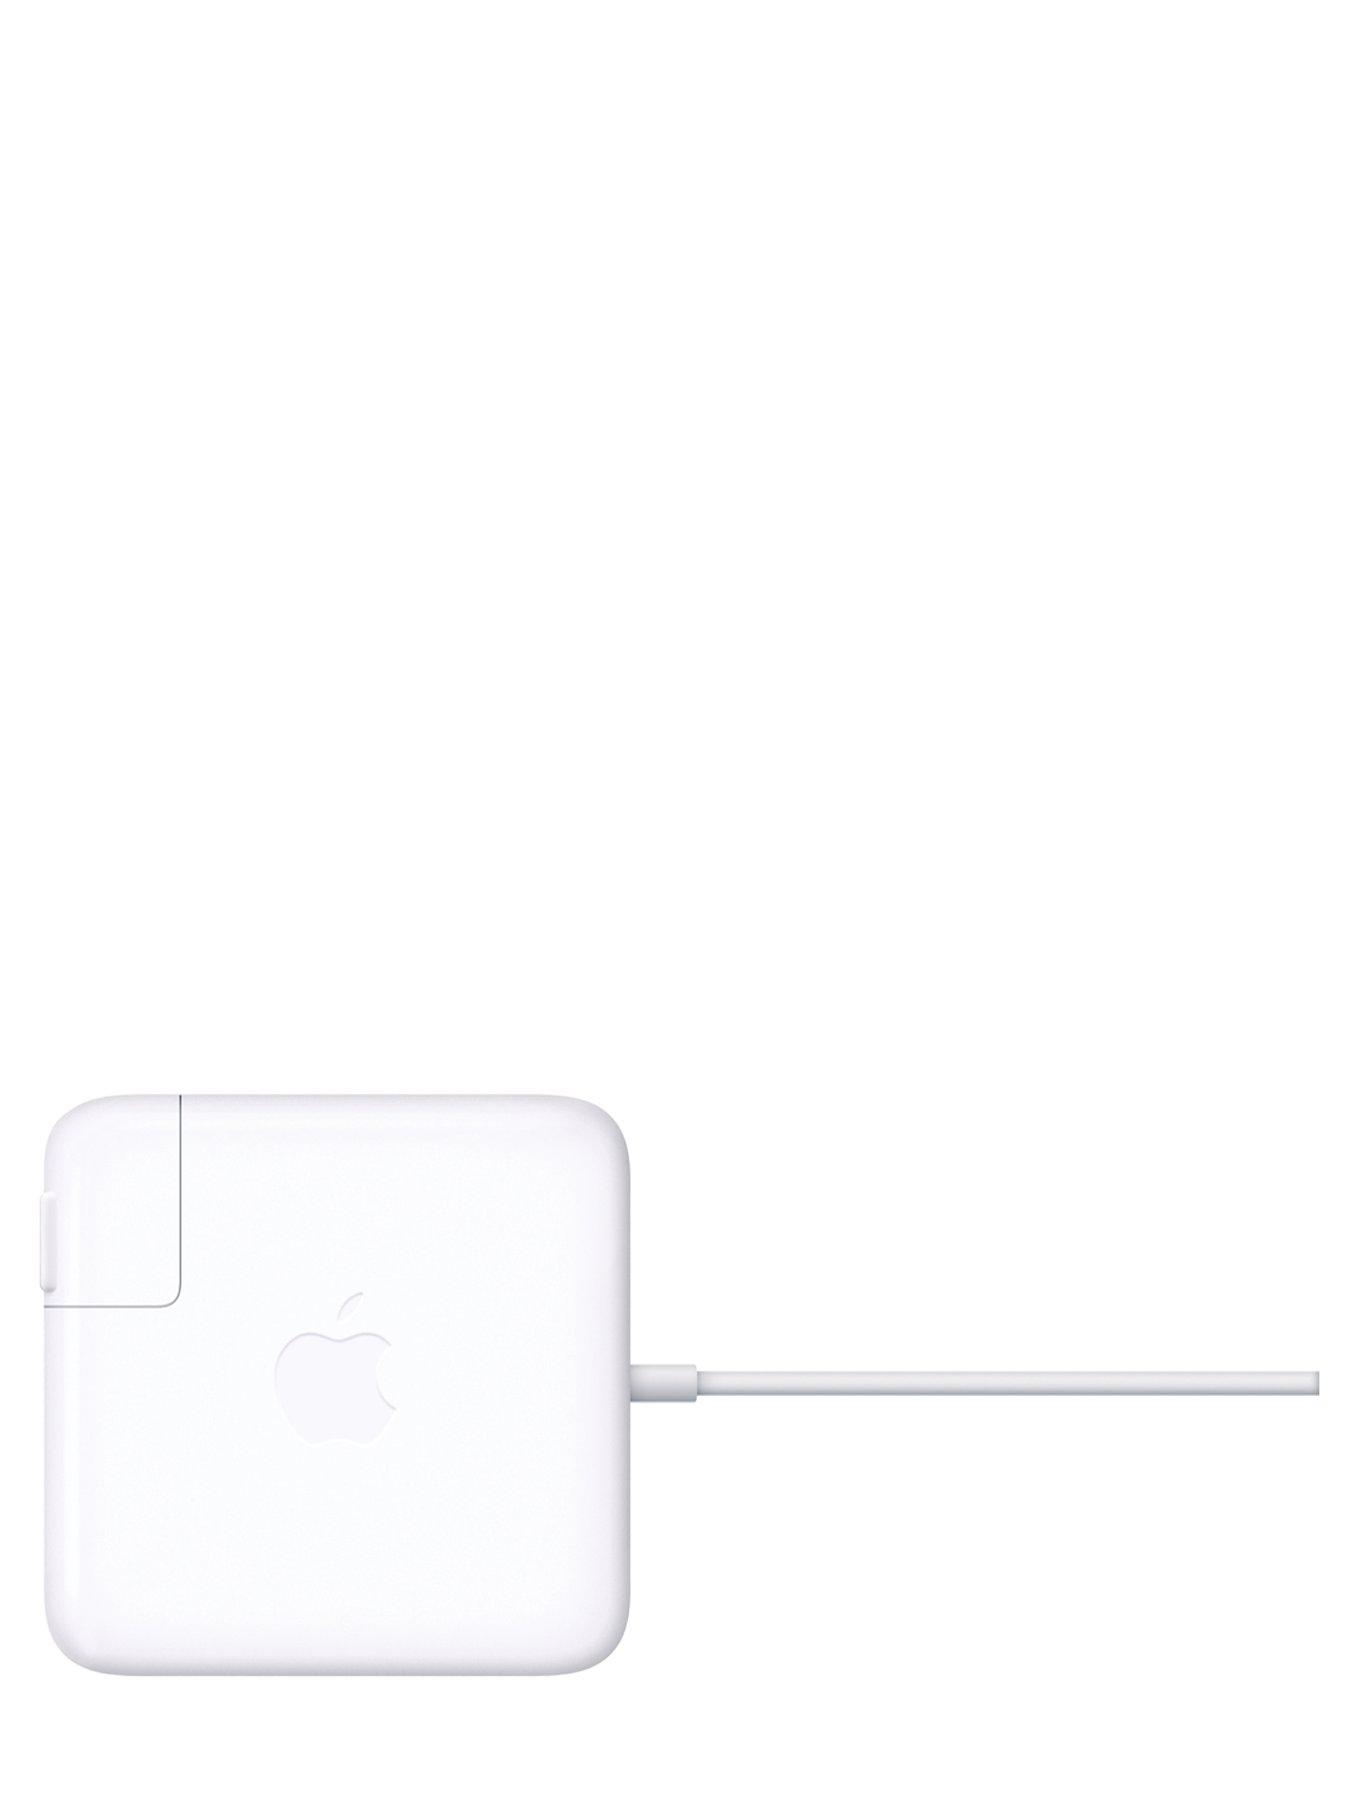 Apple MagSafe 2 Power Adapter - 45W (MacBook Air) - White